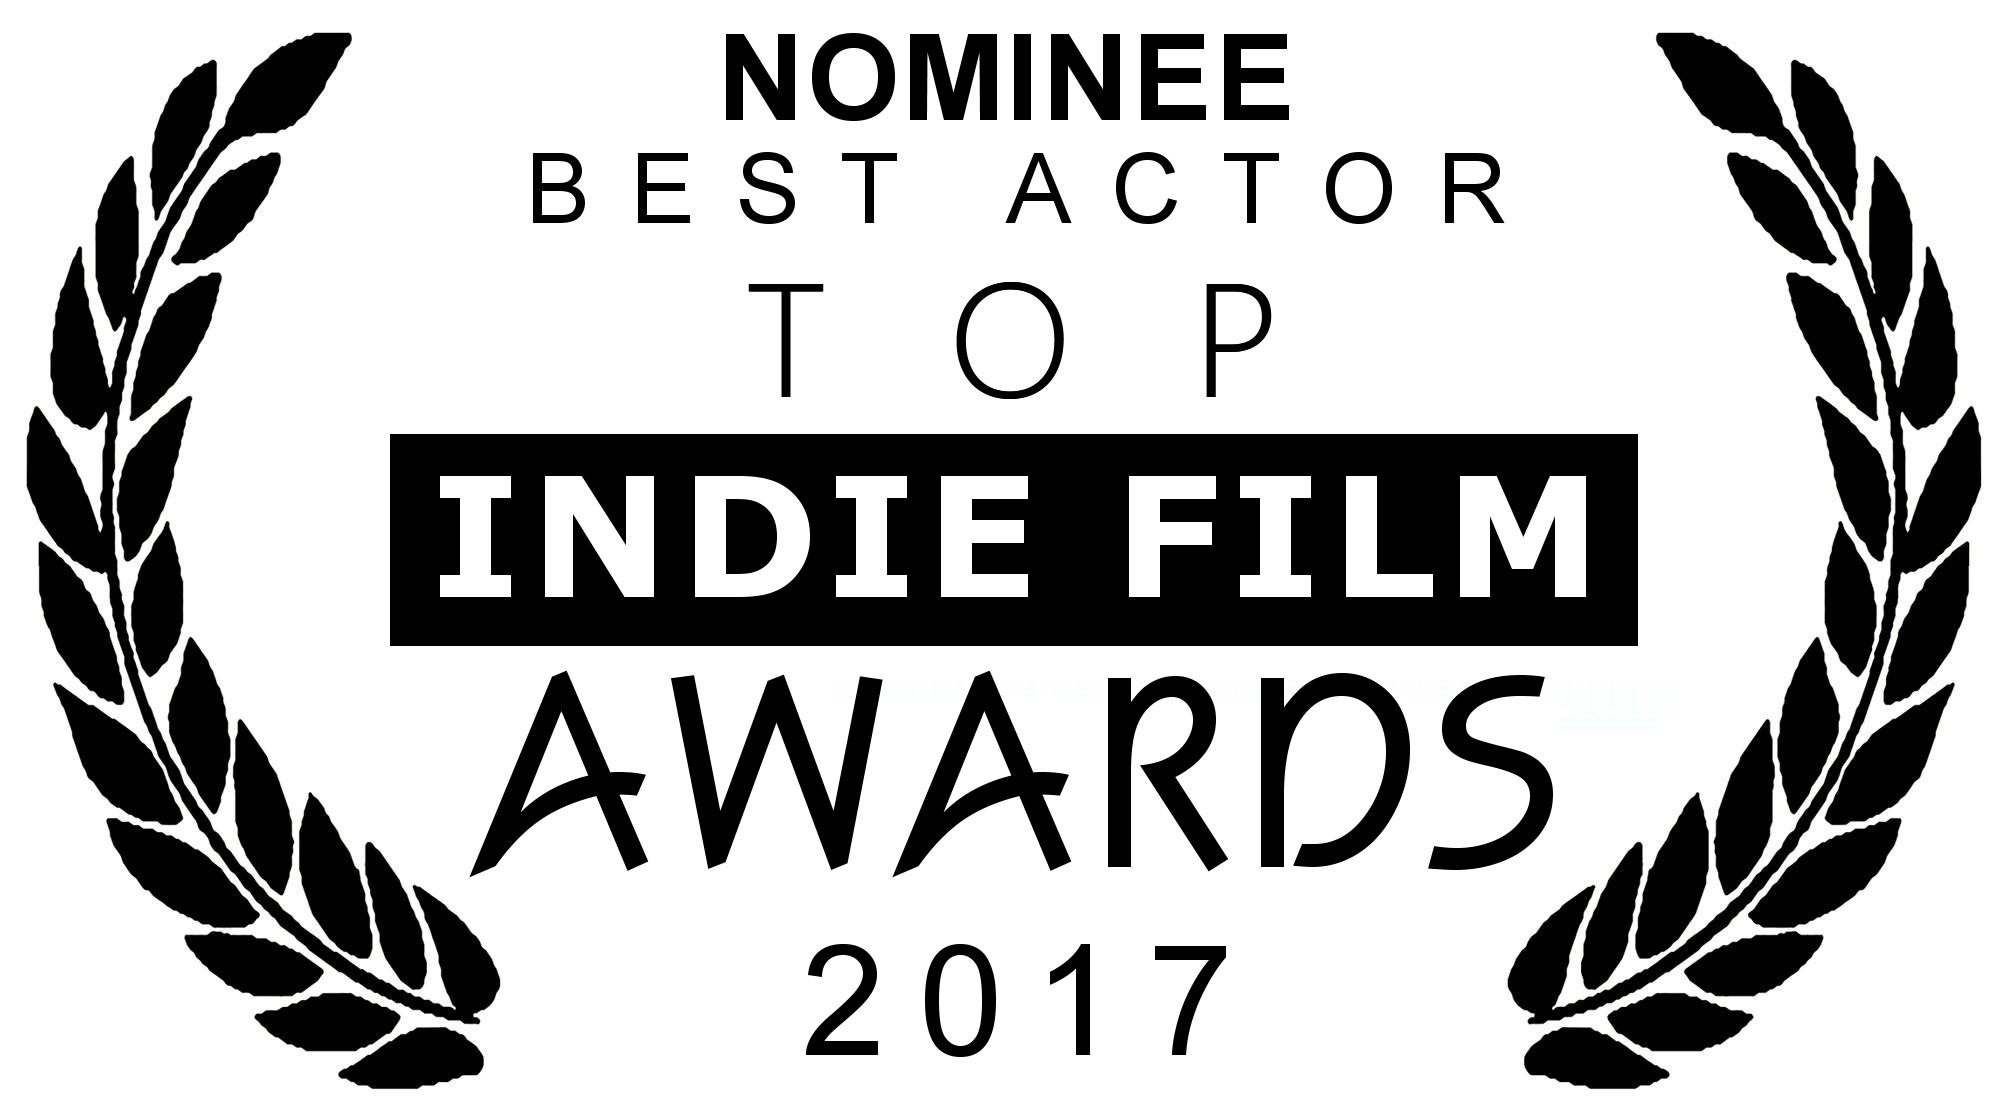 NOMINEE BEST ACTOR STEFANO Top Indie Film Awards 2017